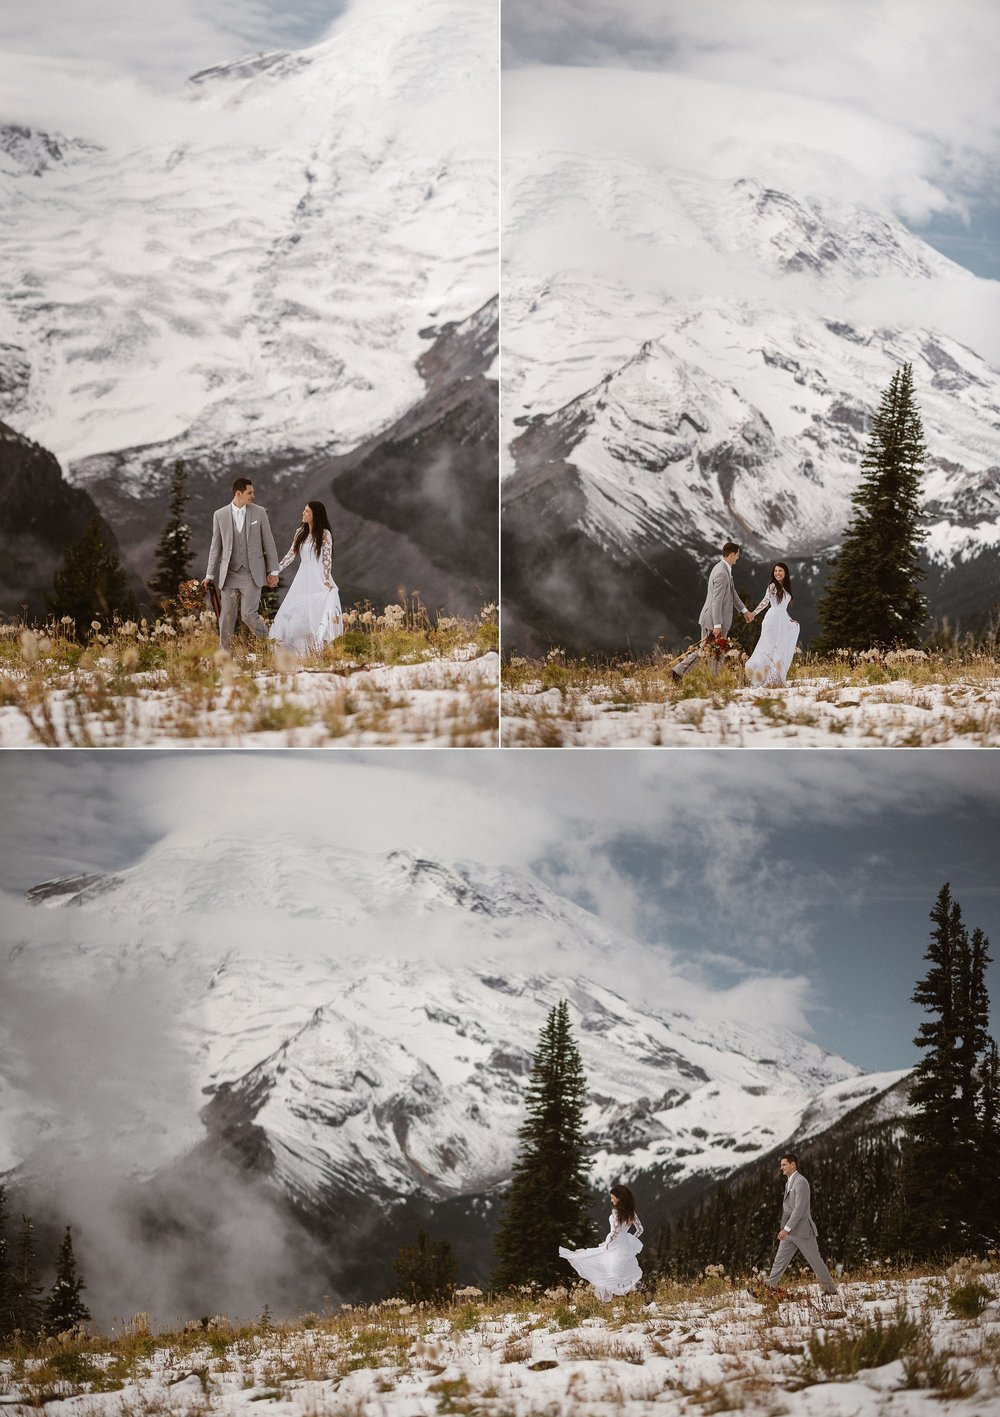 Spinning and twirling in her flowing white wedding dress Resa lead on their hike back towards the car and ending their adventurous elopement day through Mount Rainier National Park with their intimate traveling elopement photographer Maddie Mae.